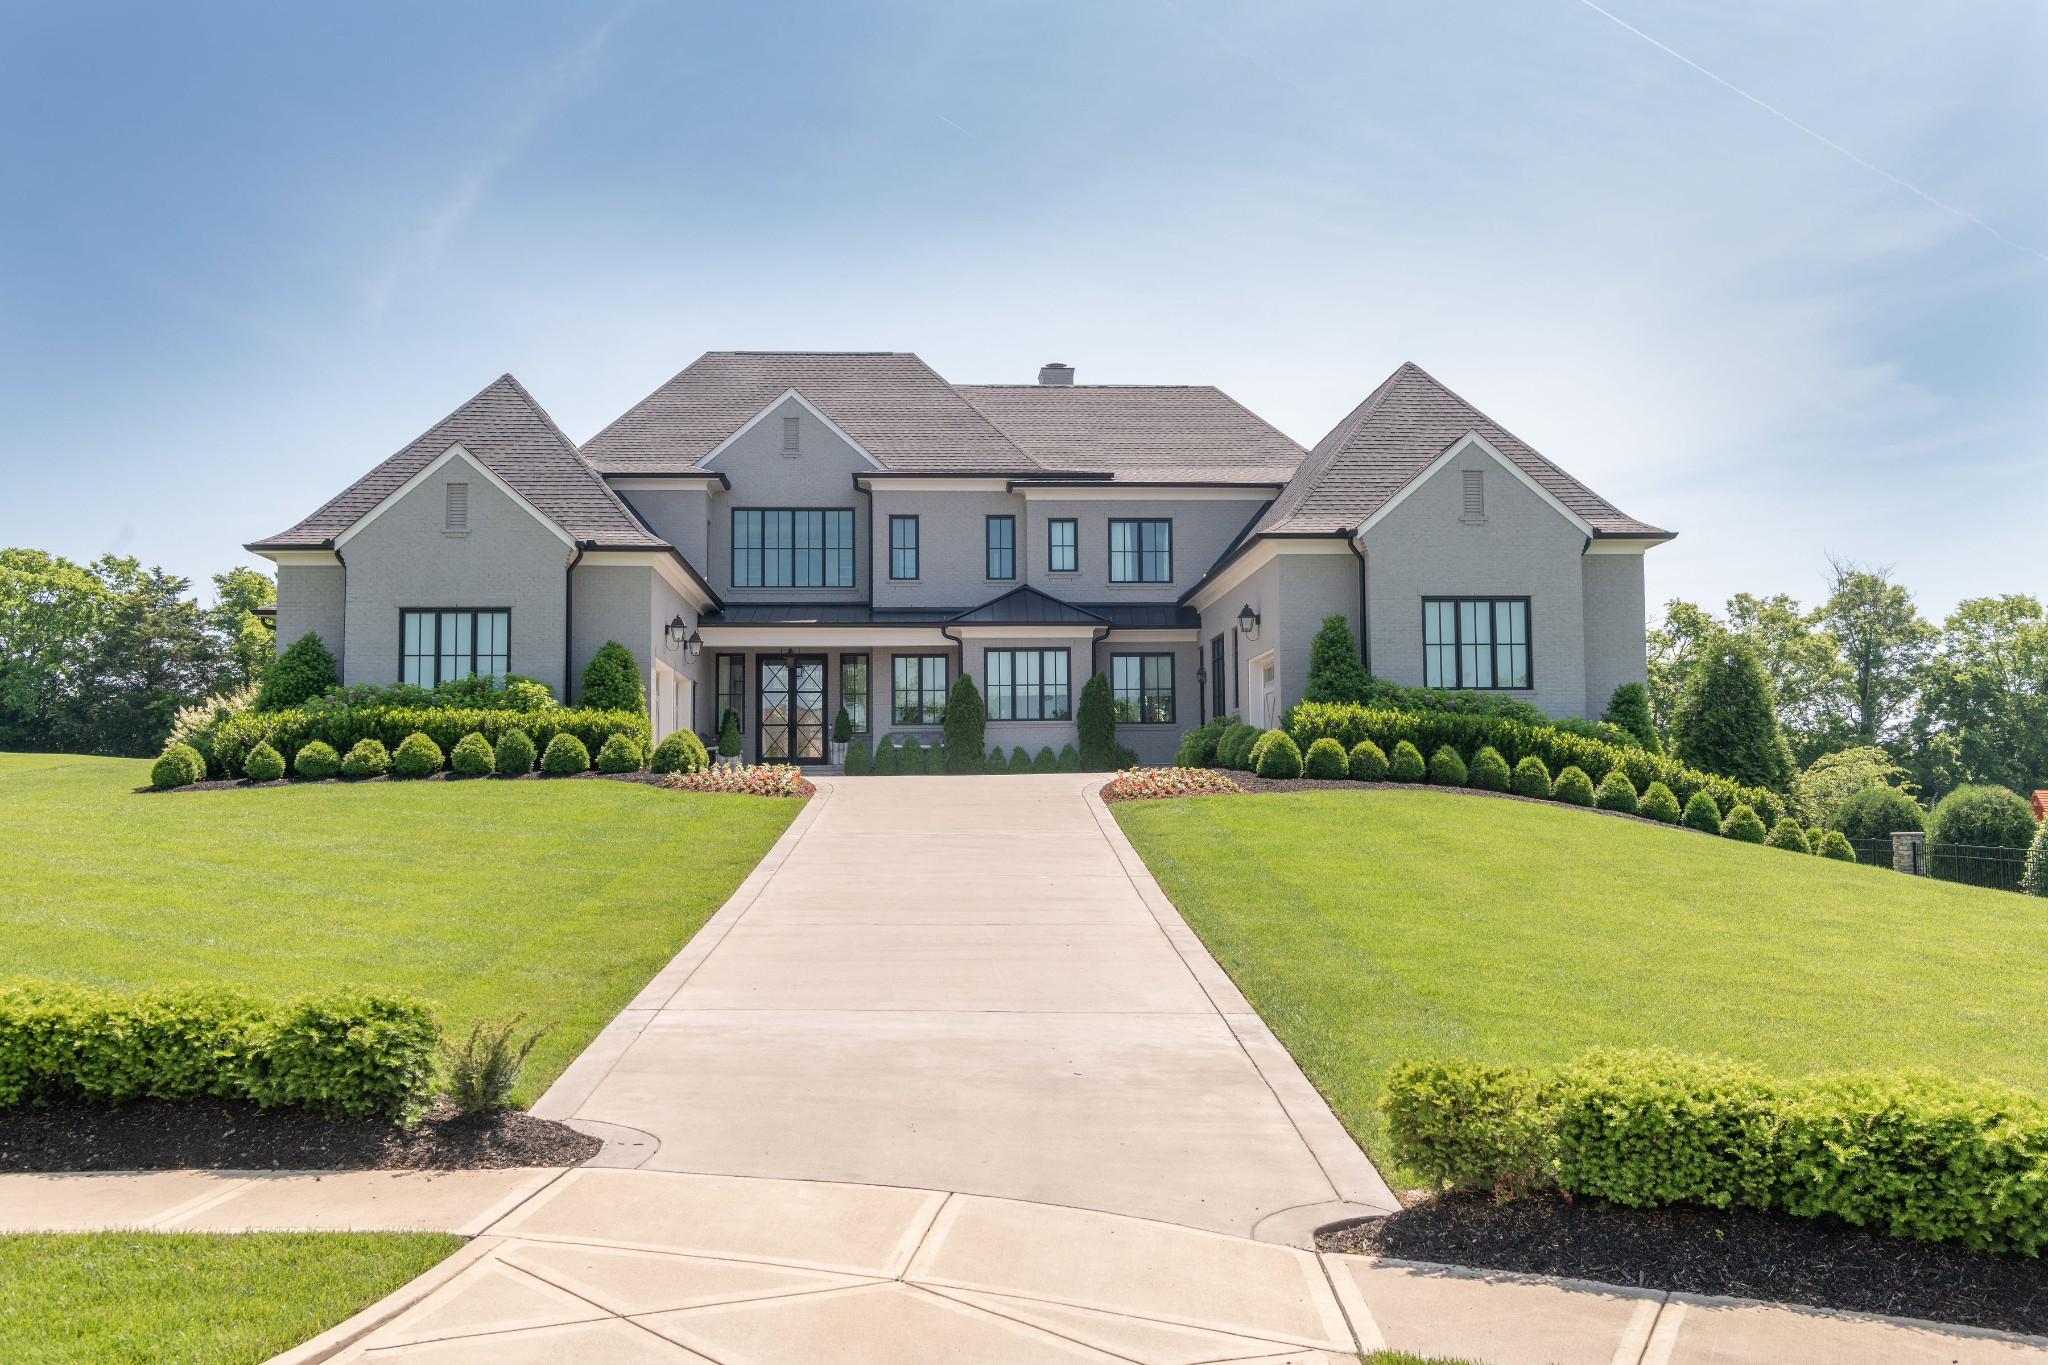 **NEW PRICE**Brilliant home in spectacular Annandale neighborhood highlights open floor plan.The gourmet kitchen has a great eat-in nook and opens to a spacious family room and striking dining room.Separated by a dramatic two sided fireplace, these rooms are bathed in natural light from an expansive moving wall system of glass doors.The Master Suite is flanked by a private Study and luxurious Master Bath. His & Hers closets as well as a stackable washer & dryer complete the Owner's Suite.(More)